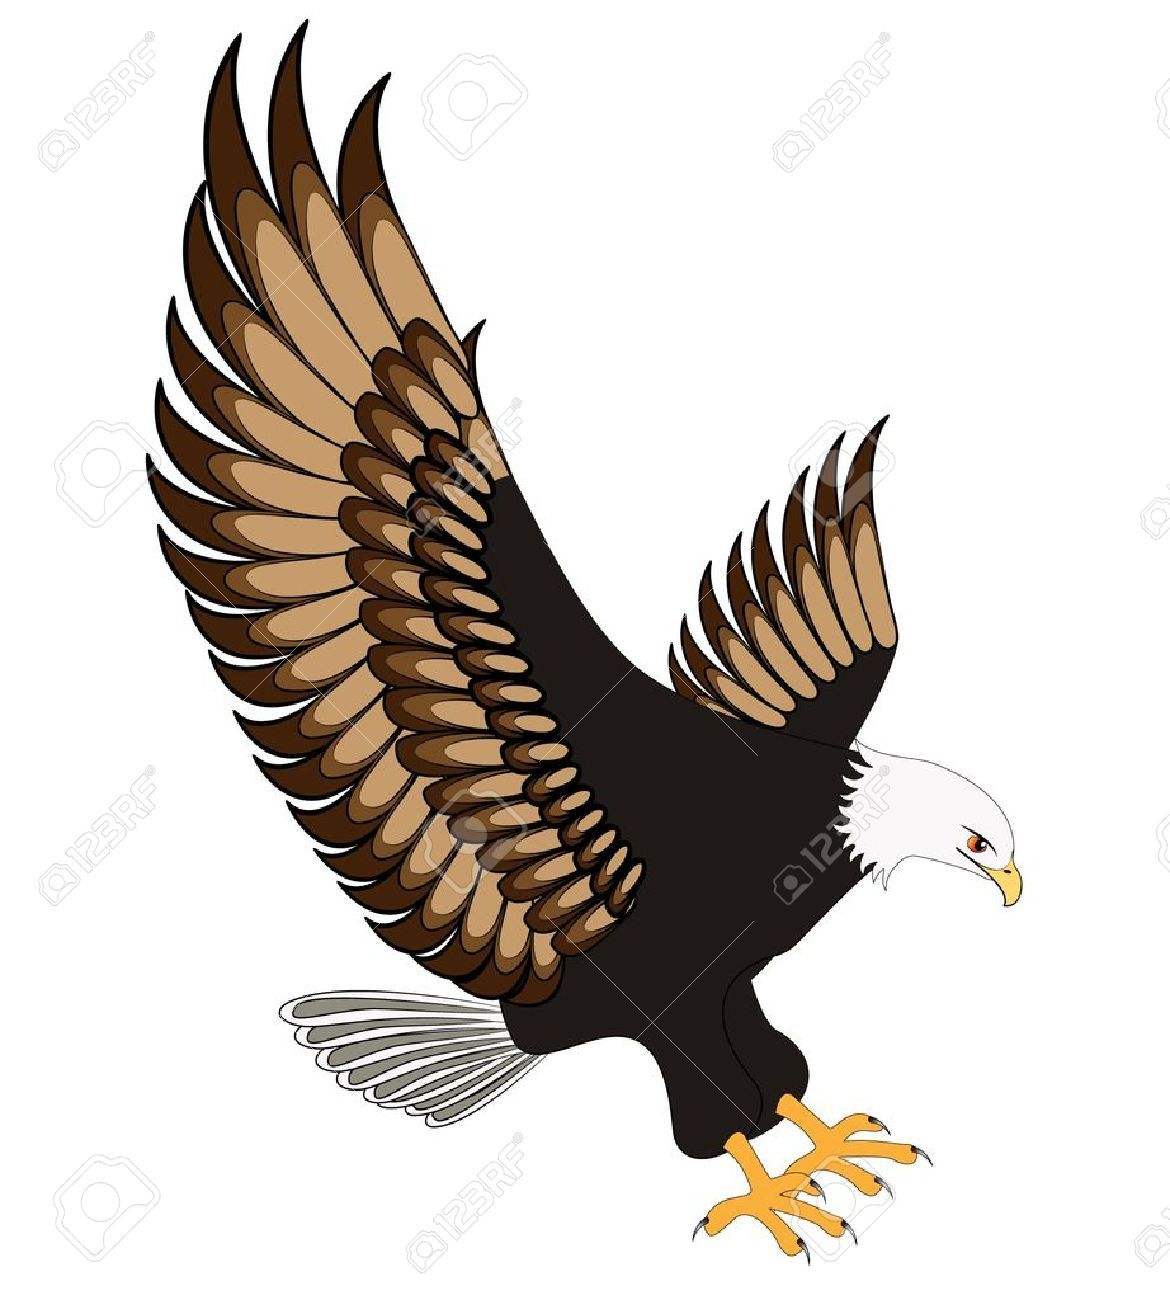 Eagle Stock Vector Illustration And Royalty Free Eagle.